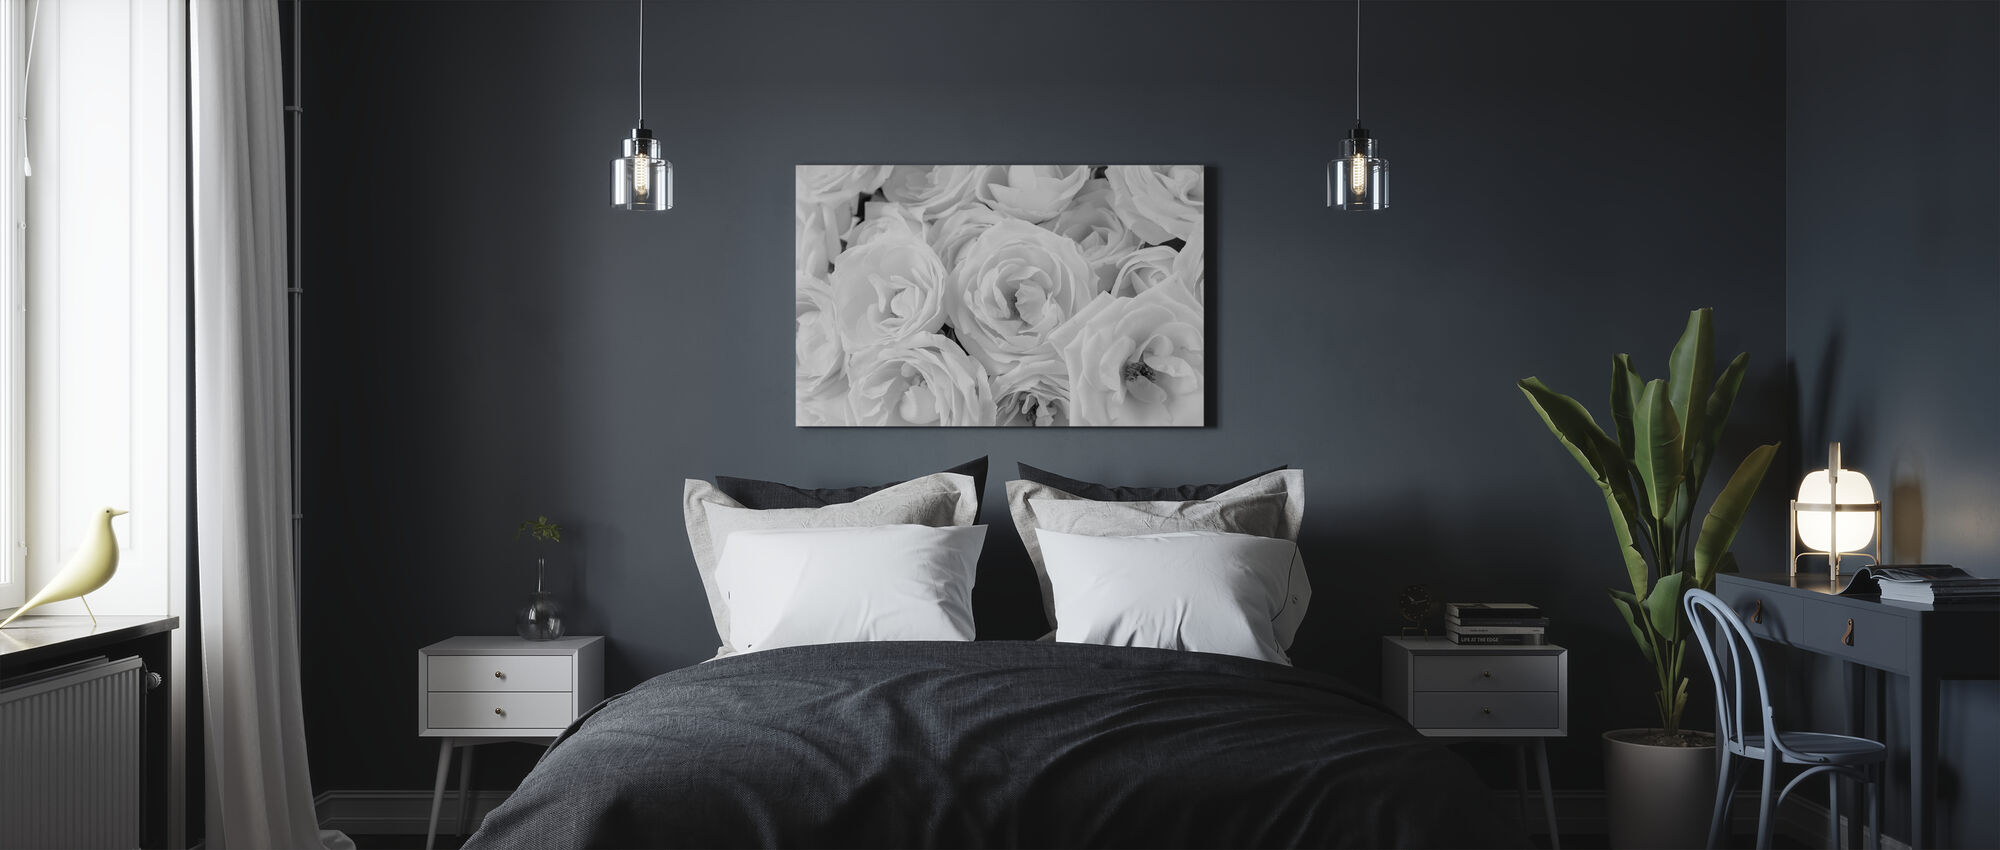 White Roses - Canvas print - Bedroom